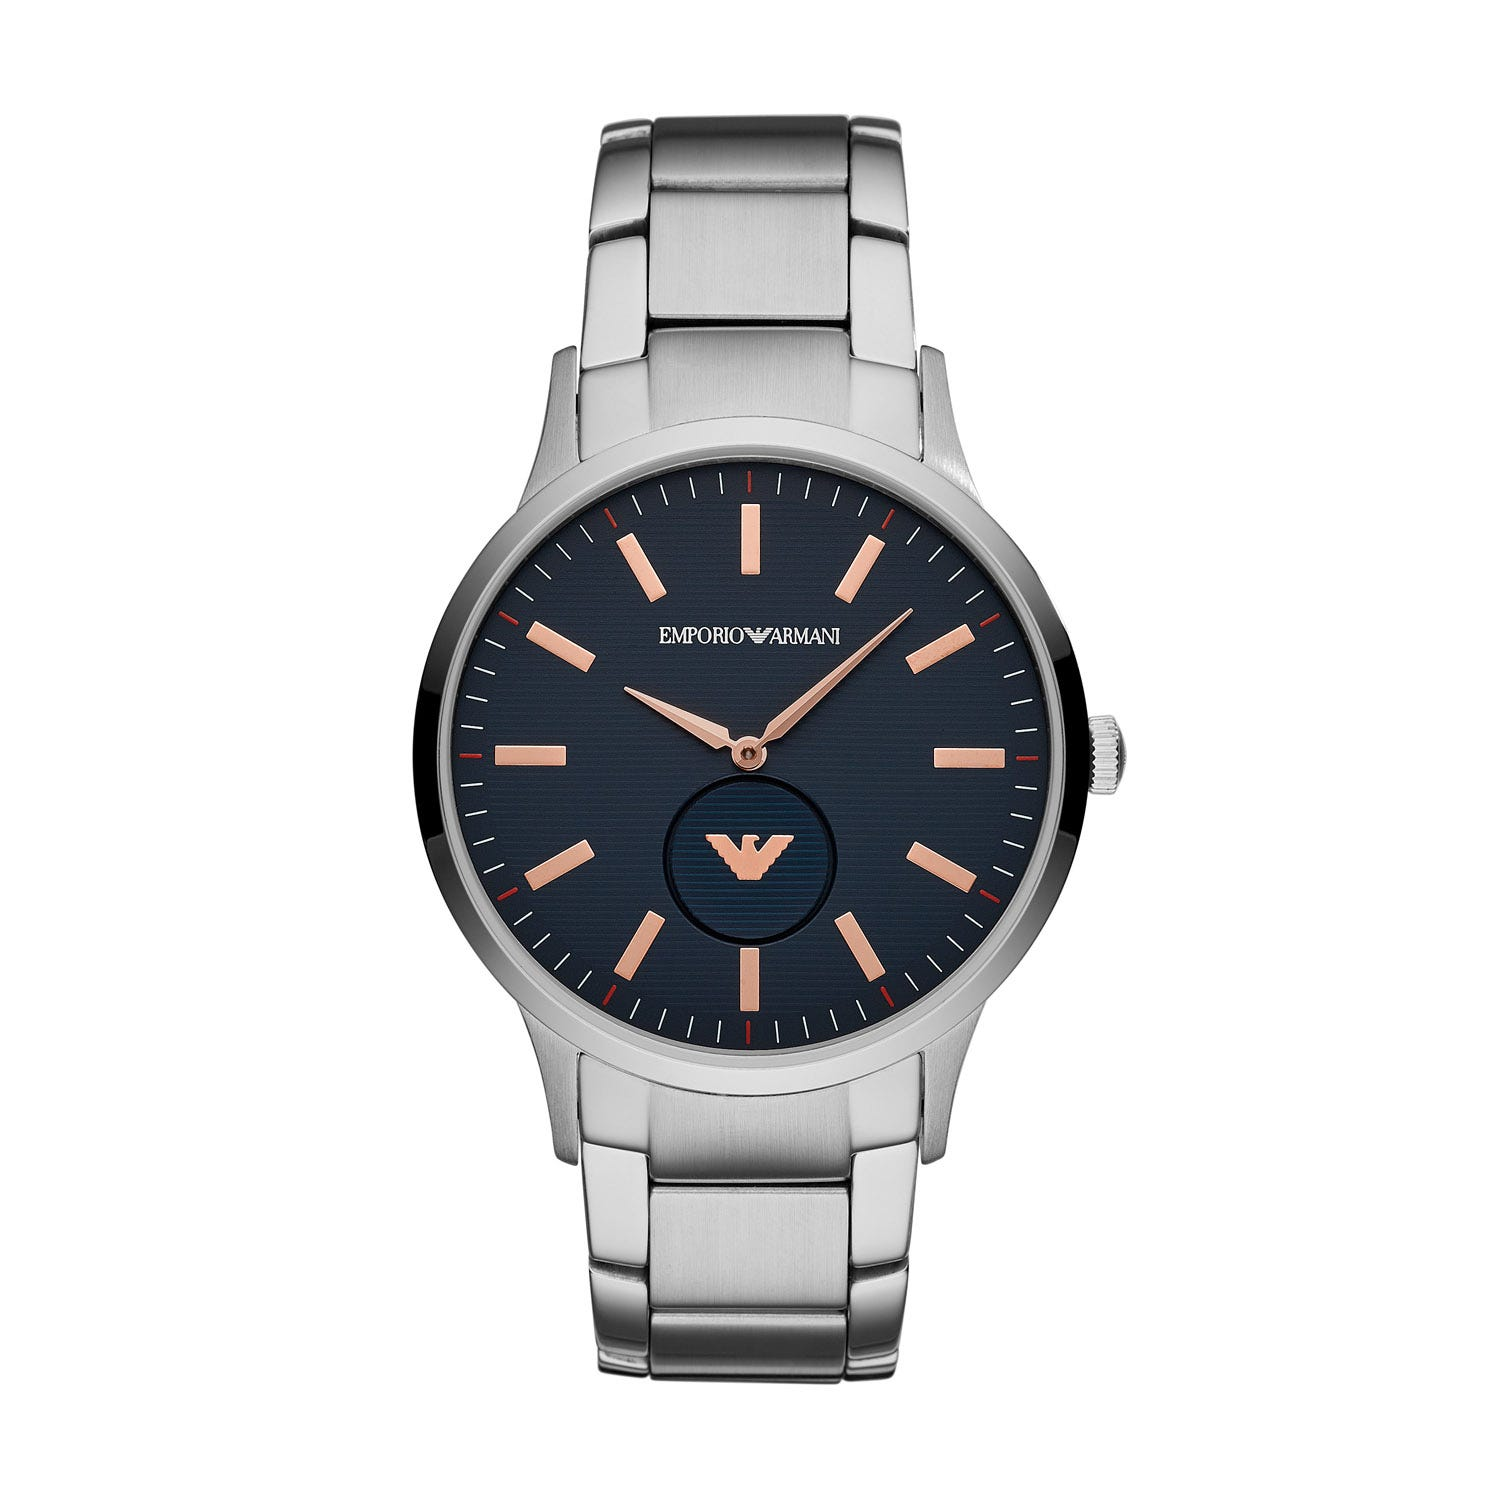 Emporio Armani Blue Dial Stainless Steel Men's Watch